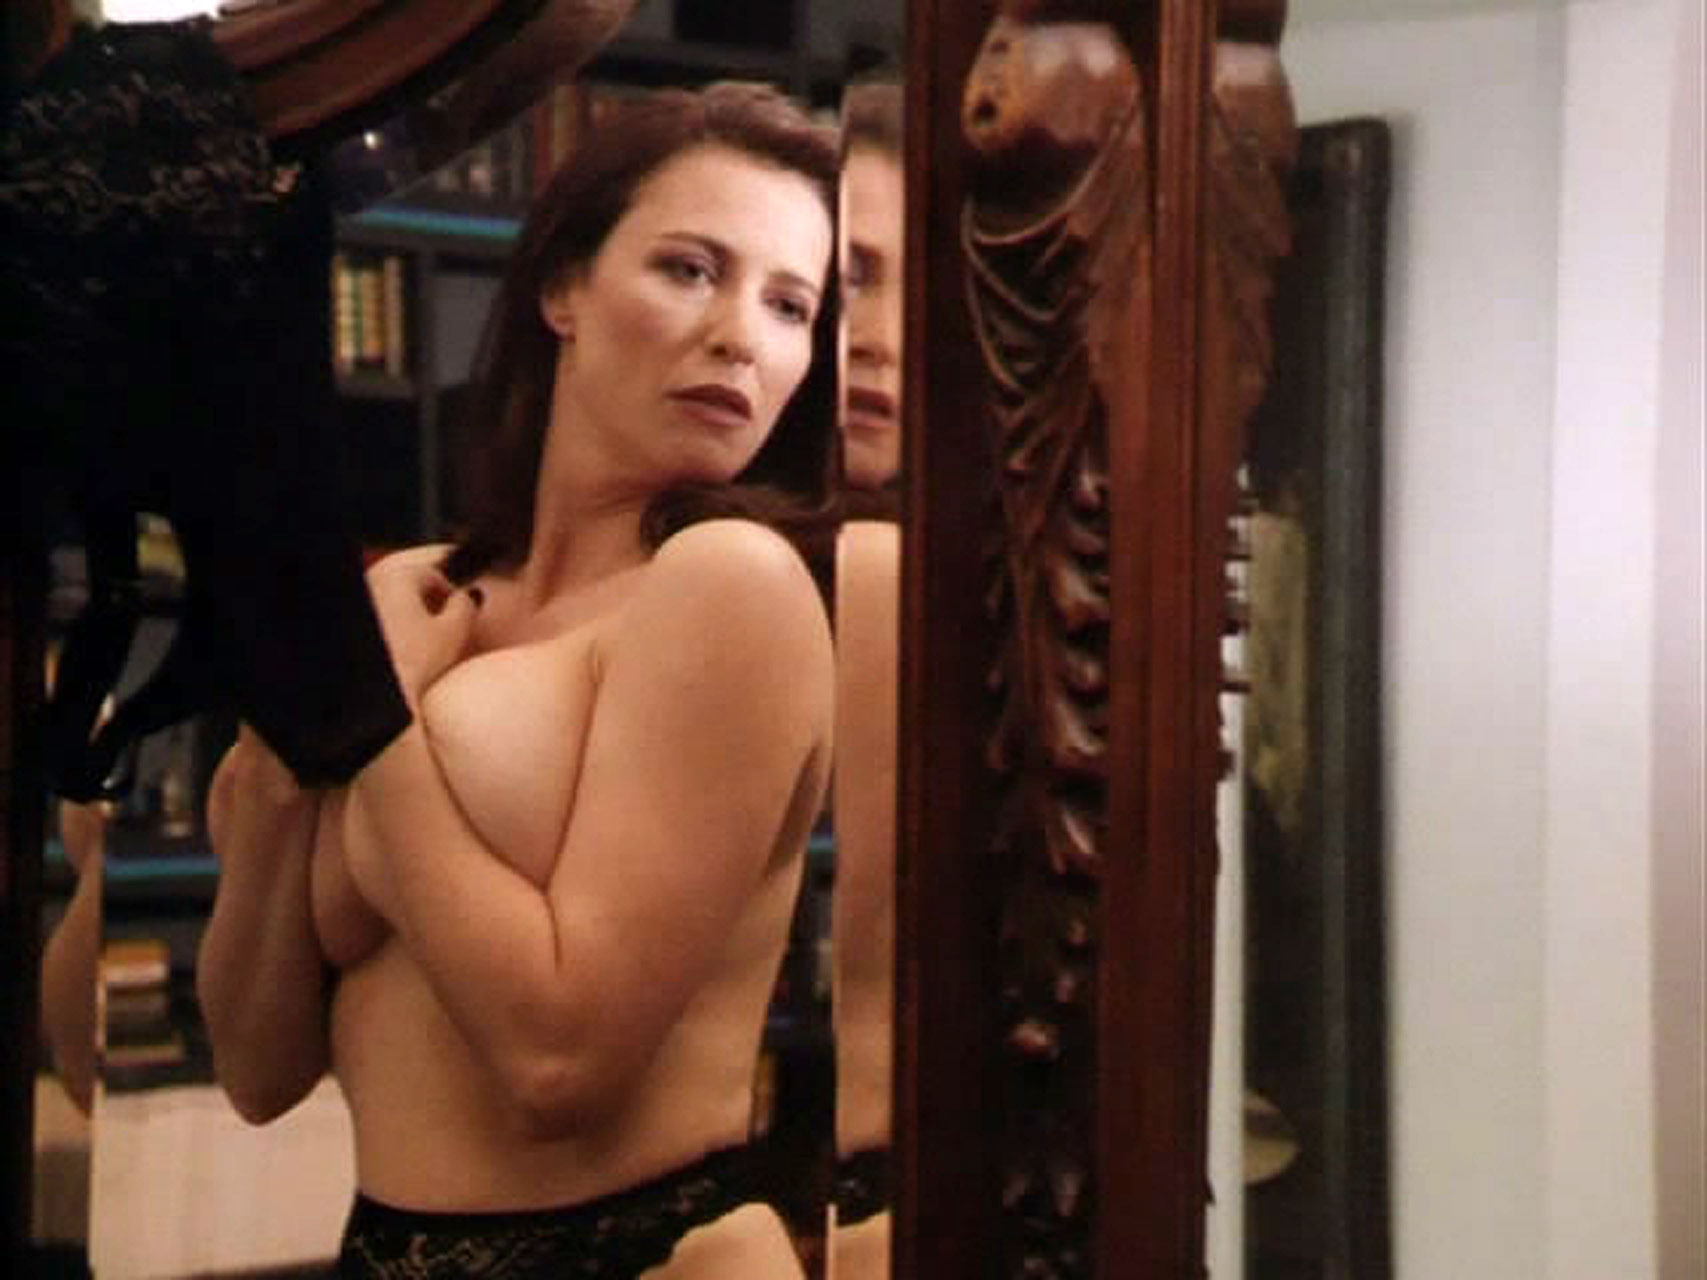 mimi rogers 13 This submissive Japanese cam girl is begging to be ...